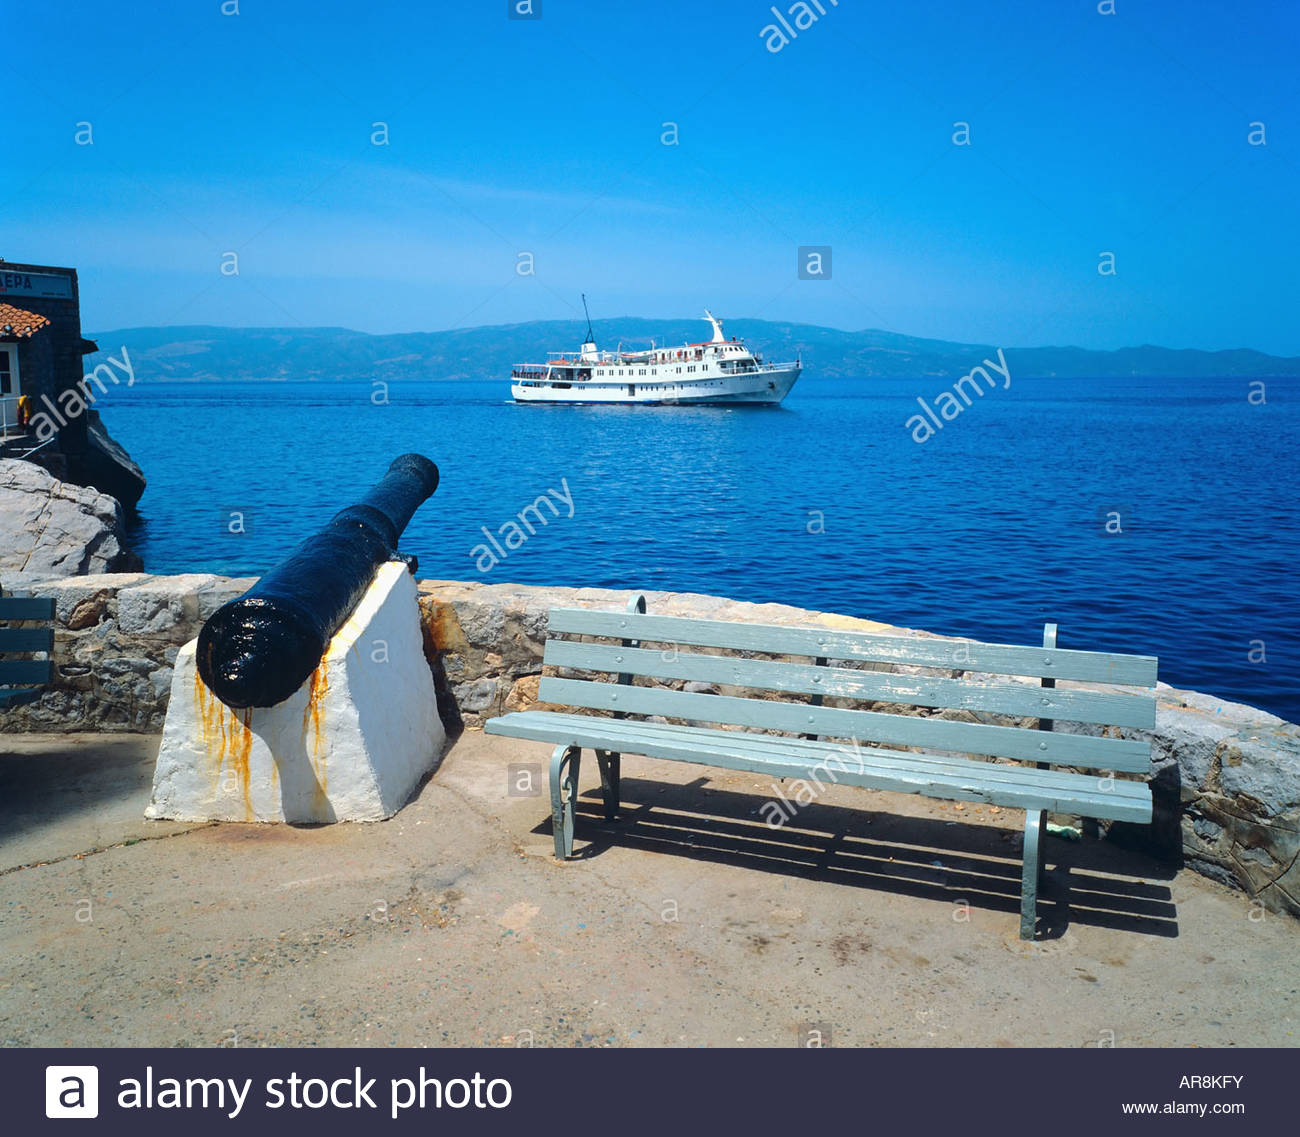 ANCIENT FORTIFICATION AND CRUISE SHIP HYDRA ISLAND SARONIC GULF GREECE - Stock Image